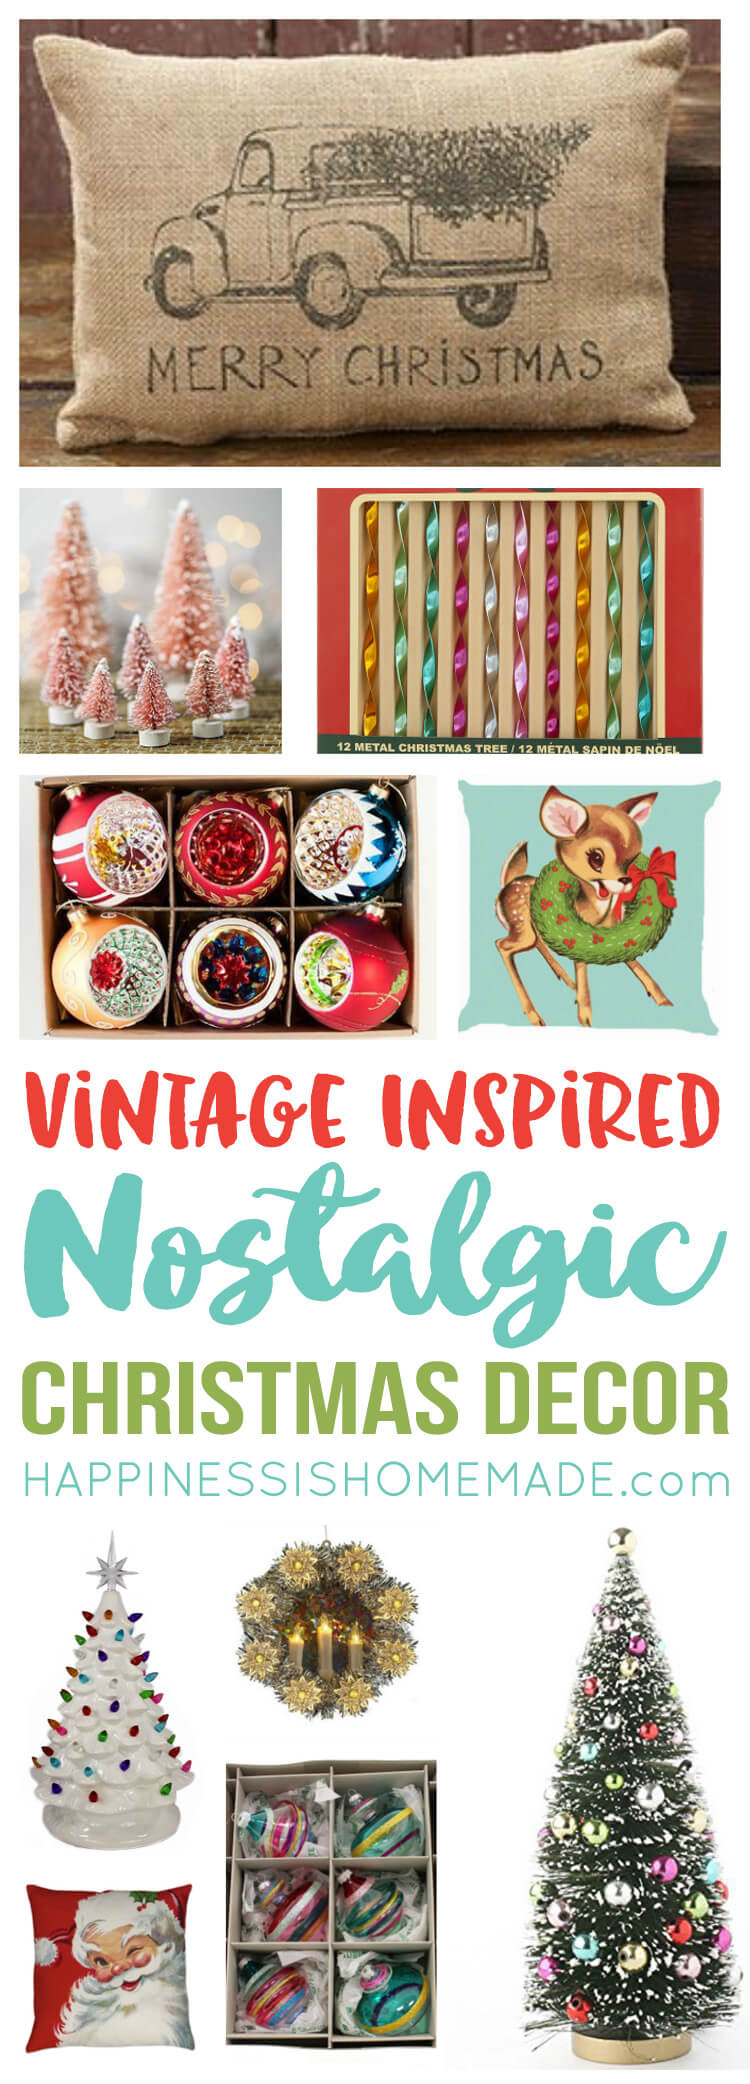 Nostalgic Vintage Inspired Christmas Decor Happiness Is